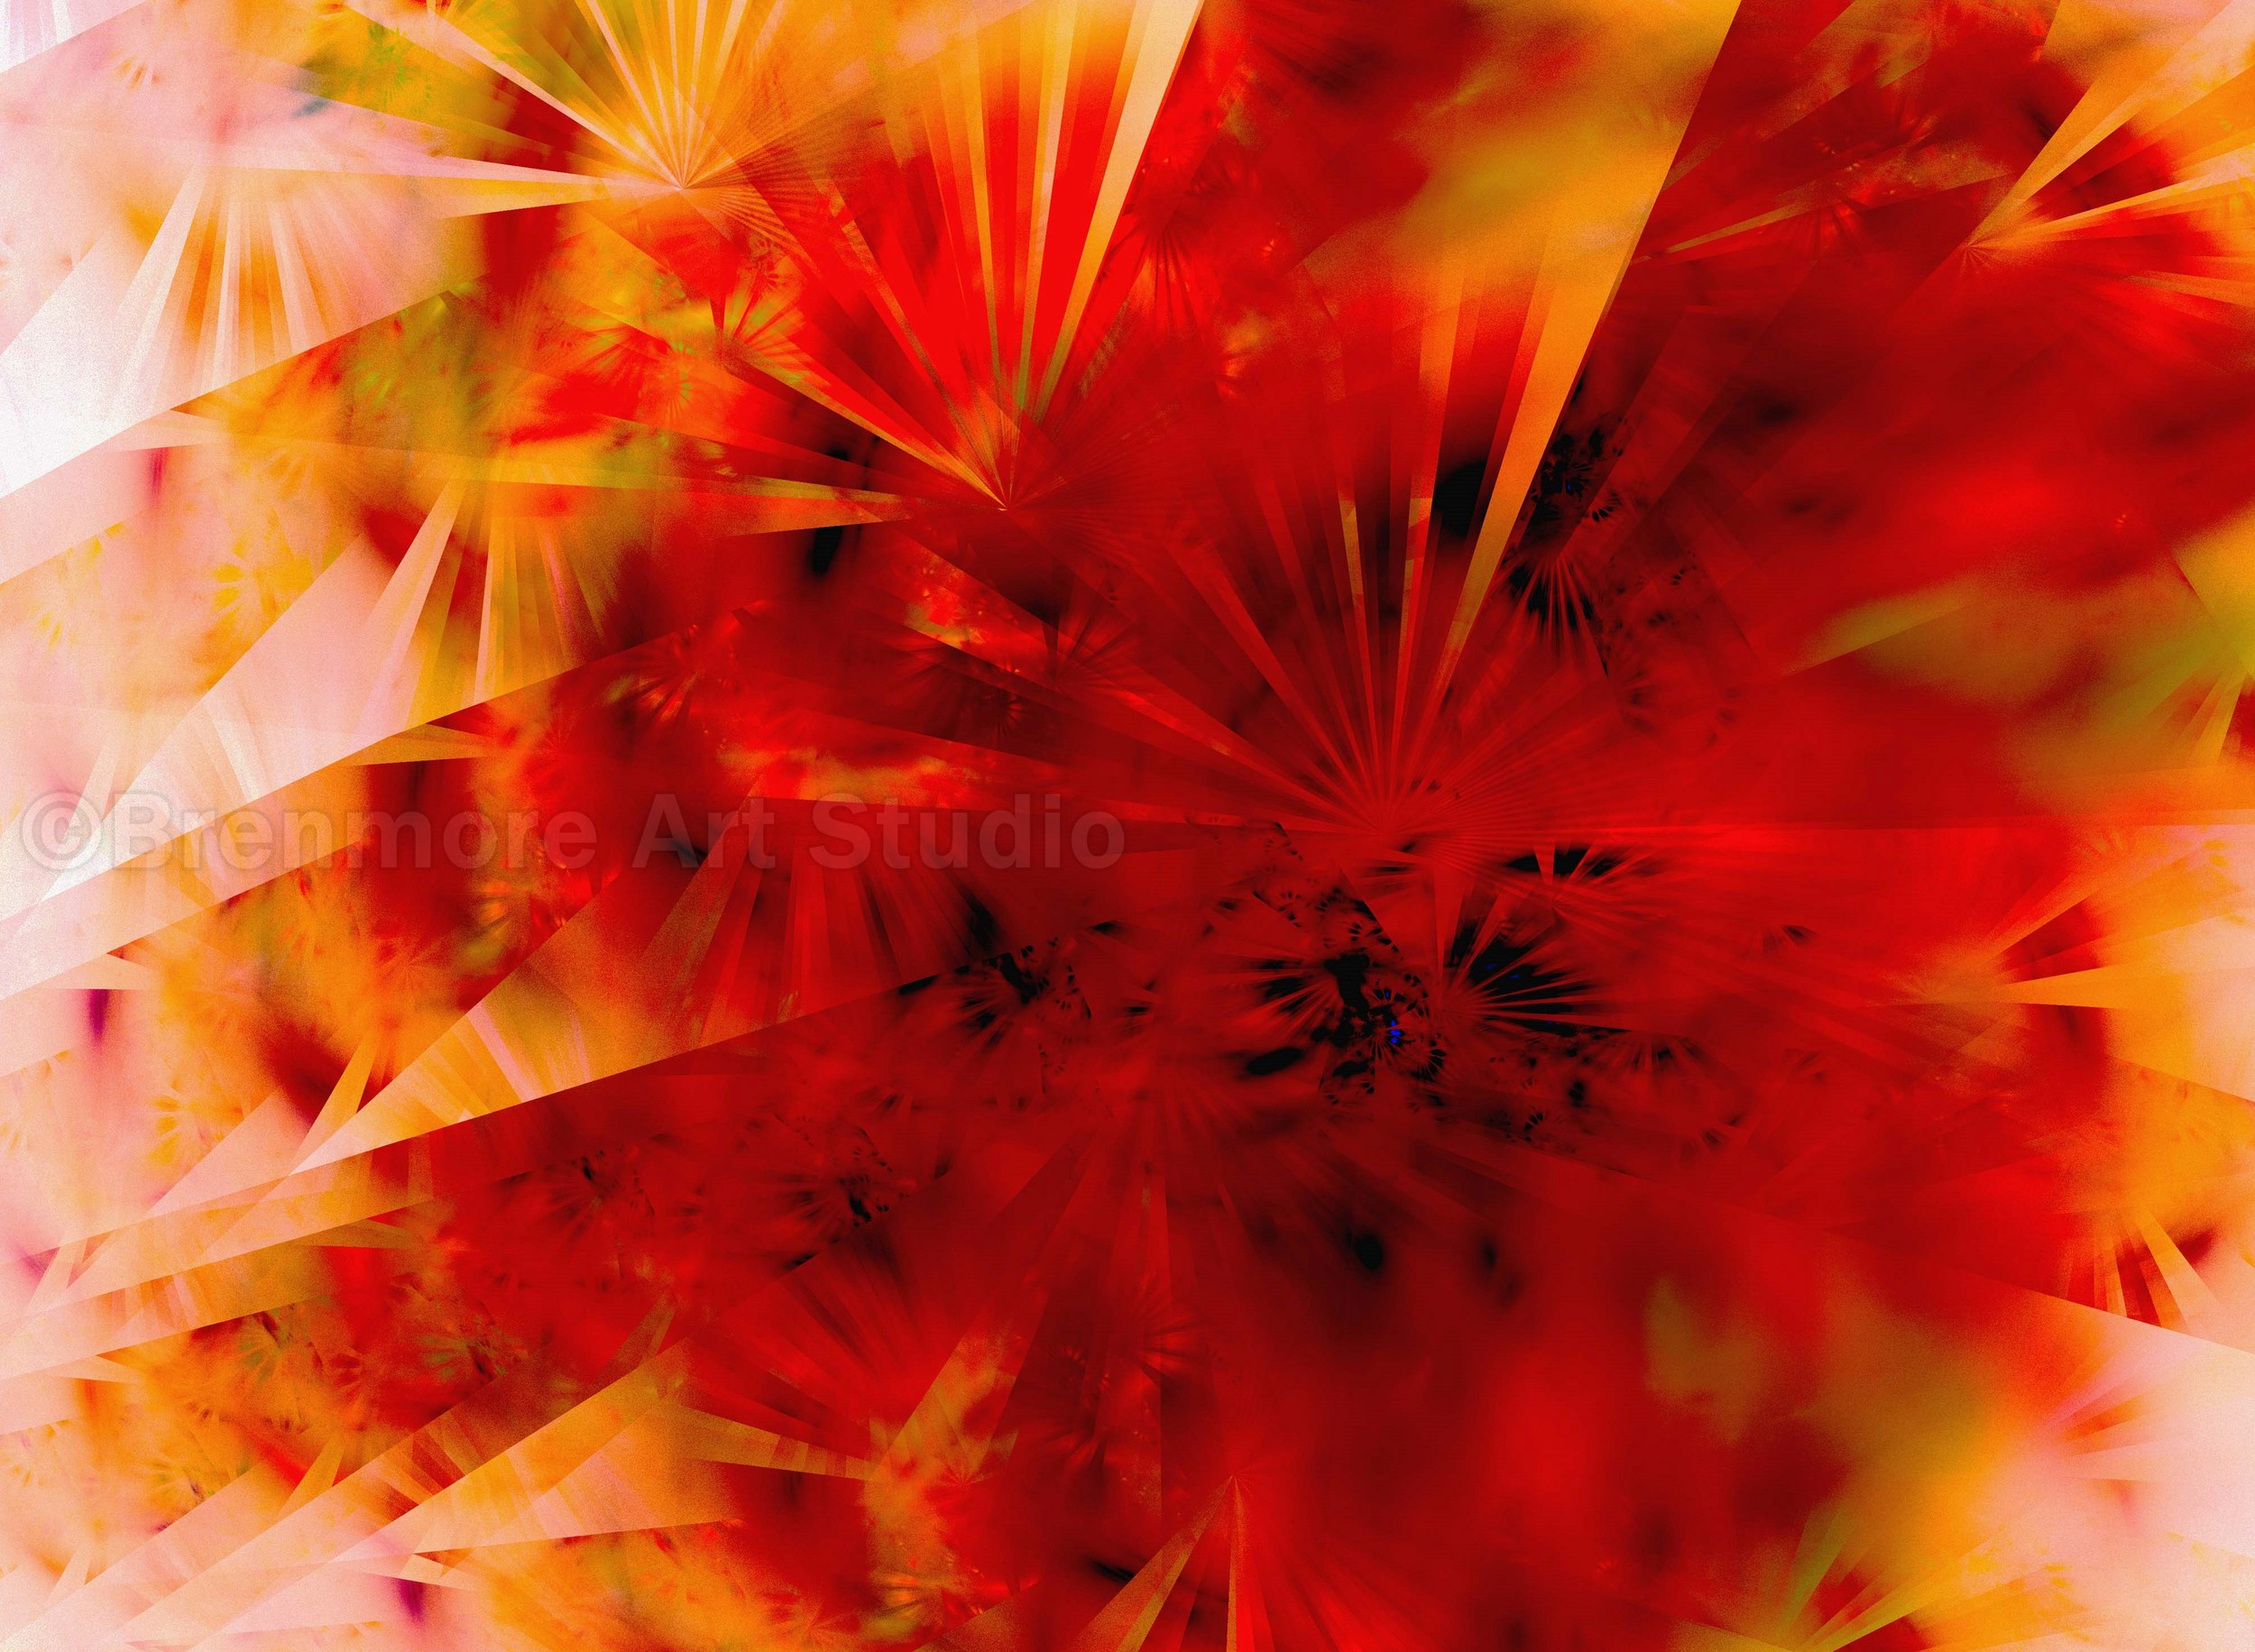 Radiance, reds and golds, flowered fans